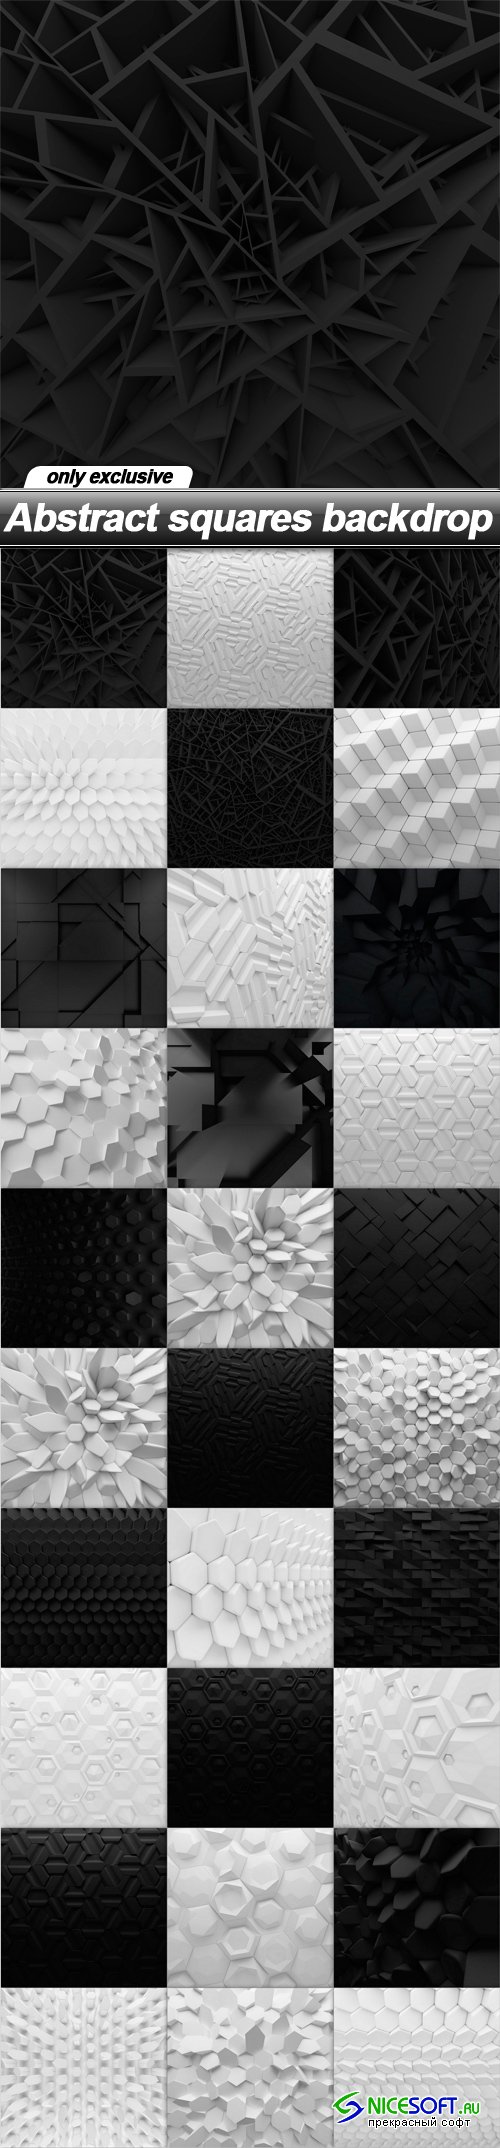 Abstract squares backdrop